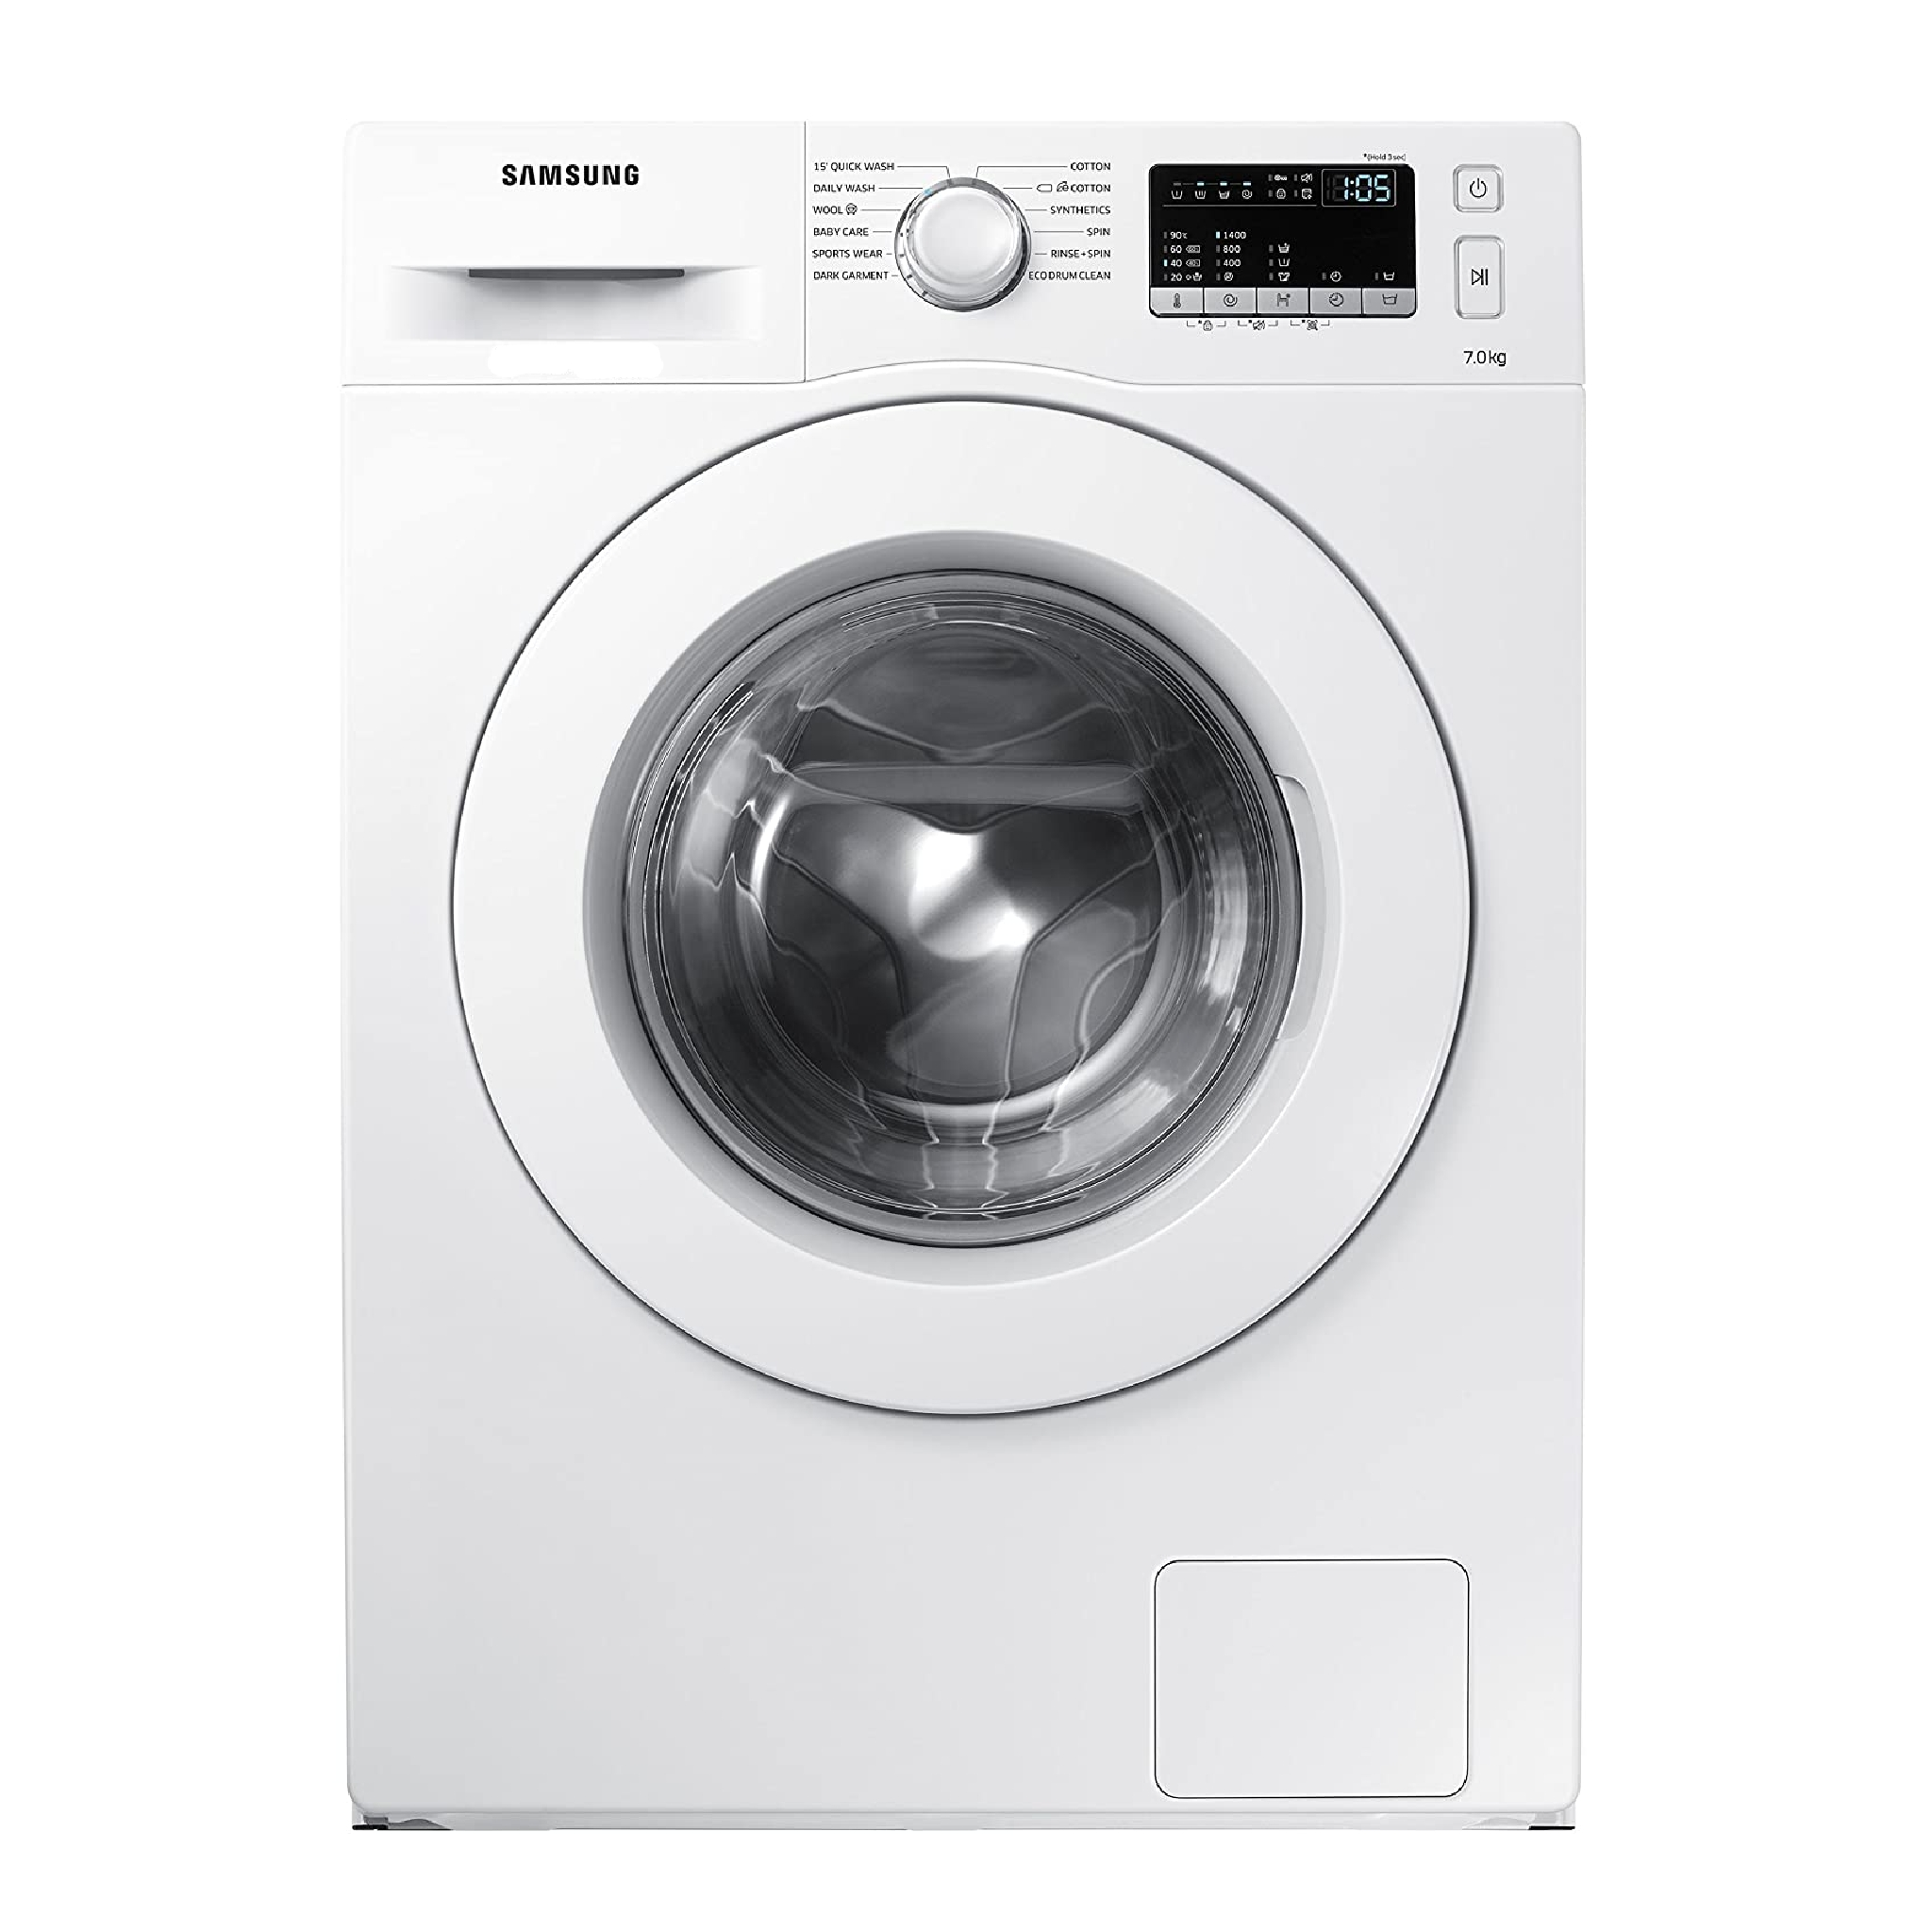 Best front loading washing machines - Samsung Front Load Washing Machine